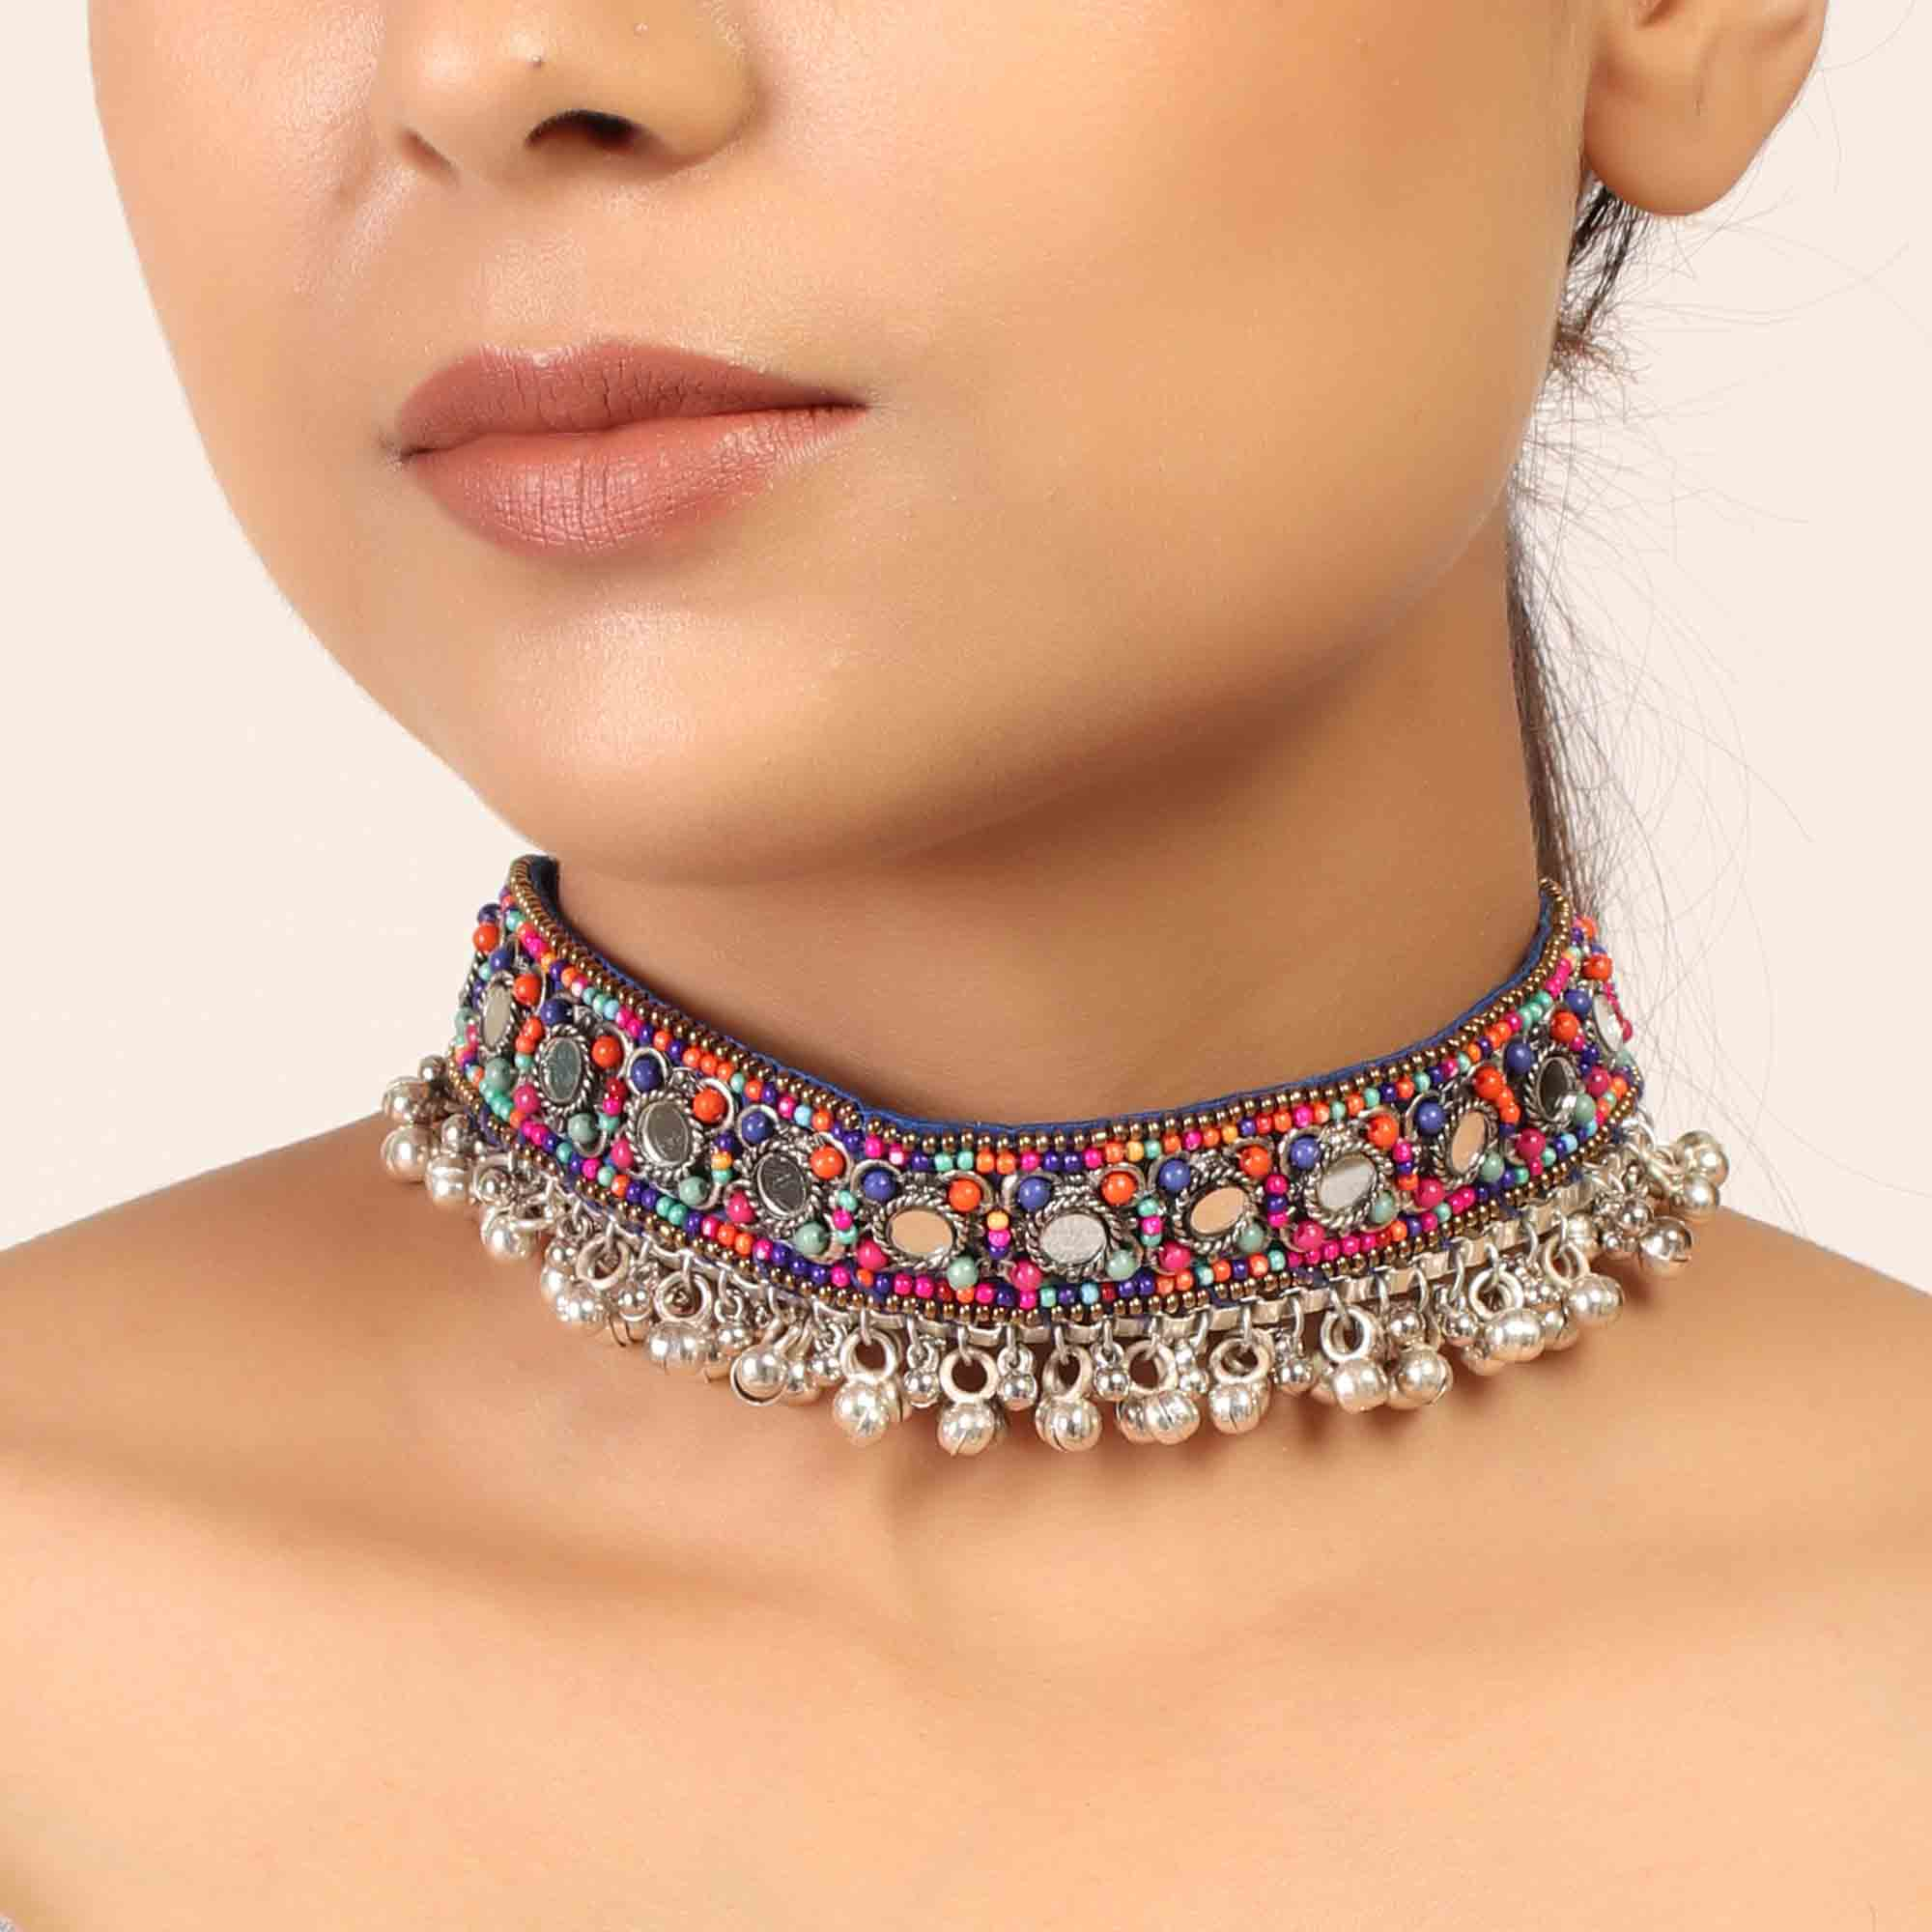 Necklace,The Splashy Colorful Beaded Choker - Cippele Multi Store